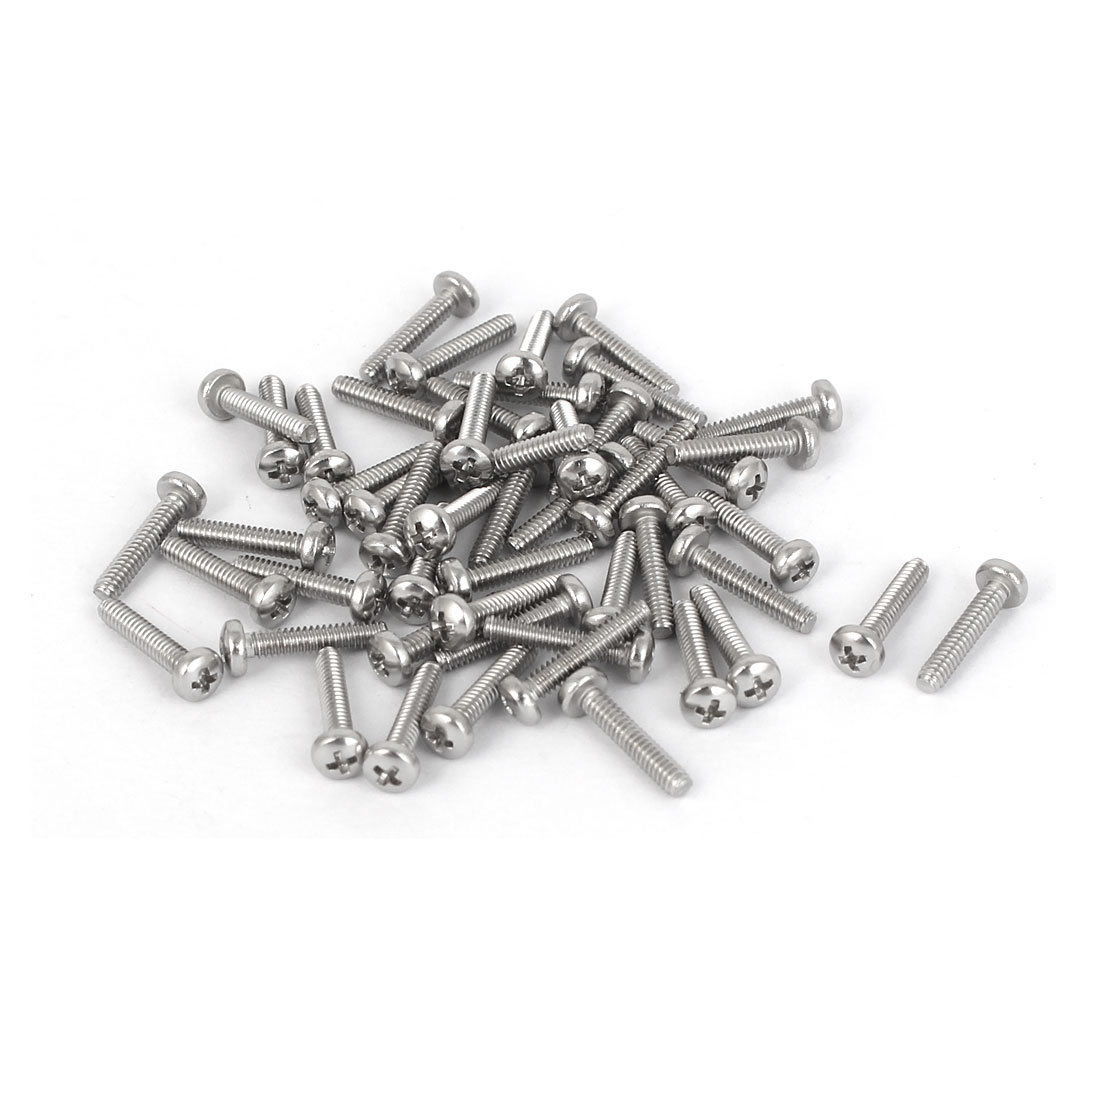 50 Pcs M1.6x8mm 316 Stainless Steel Phillips Pan Head Machine Screws Bolts